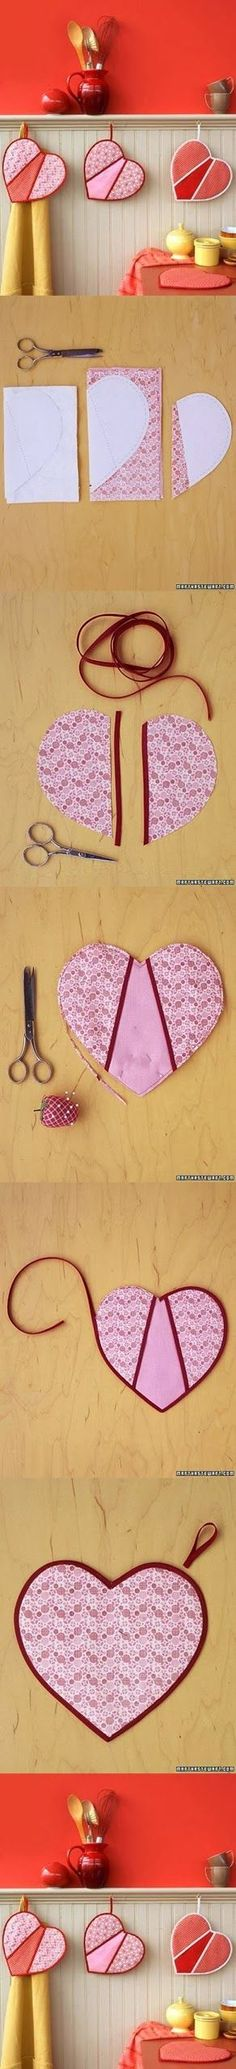 Heart Shaped Pot Holders tutorial: